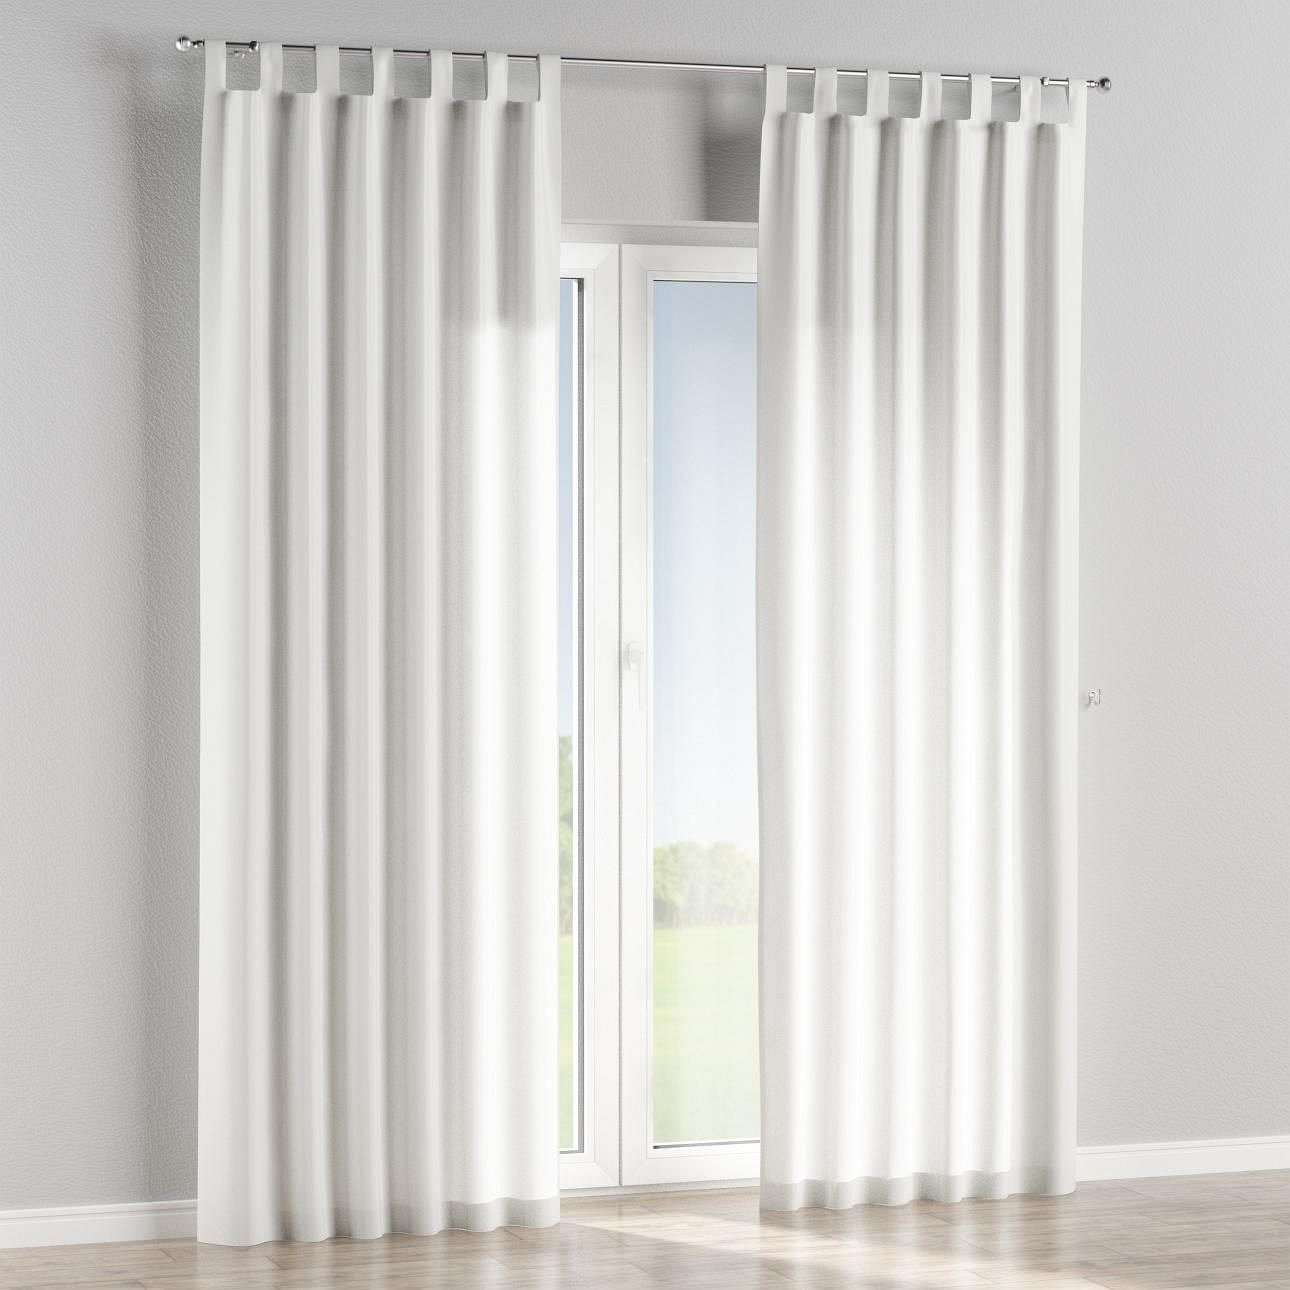 Tab top curtains in collection Cardiff, fabric: 136-28